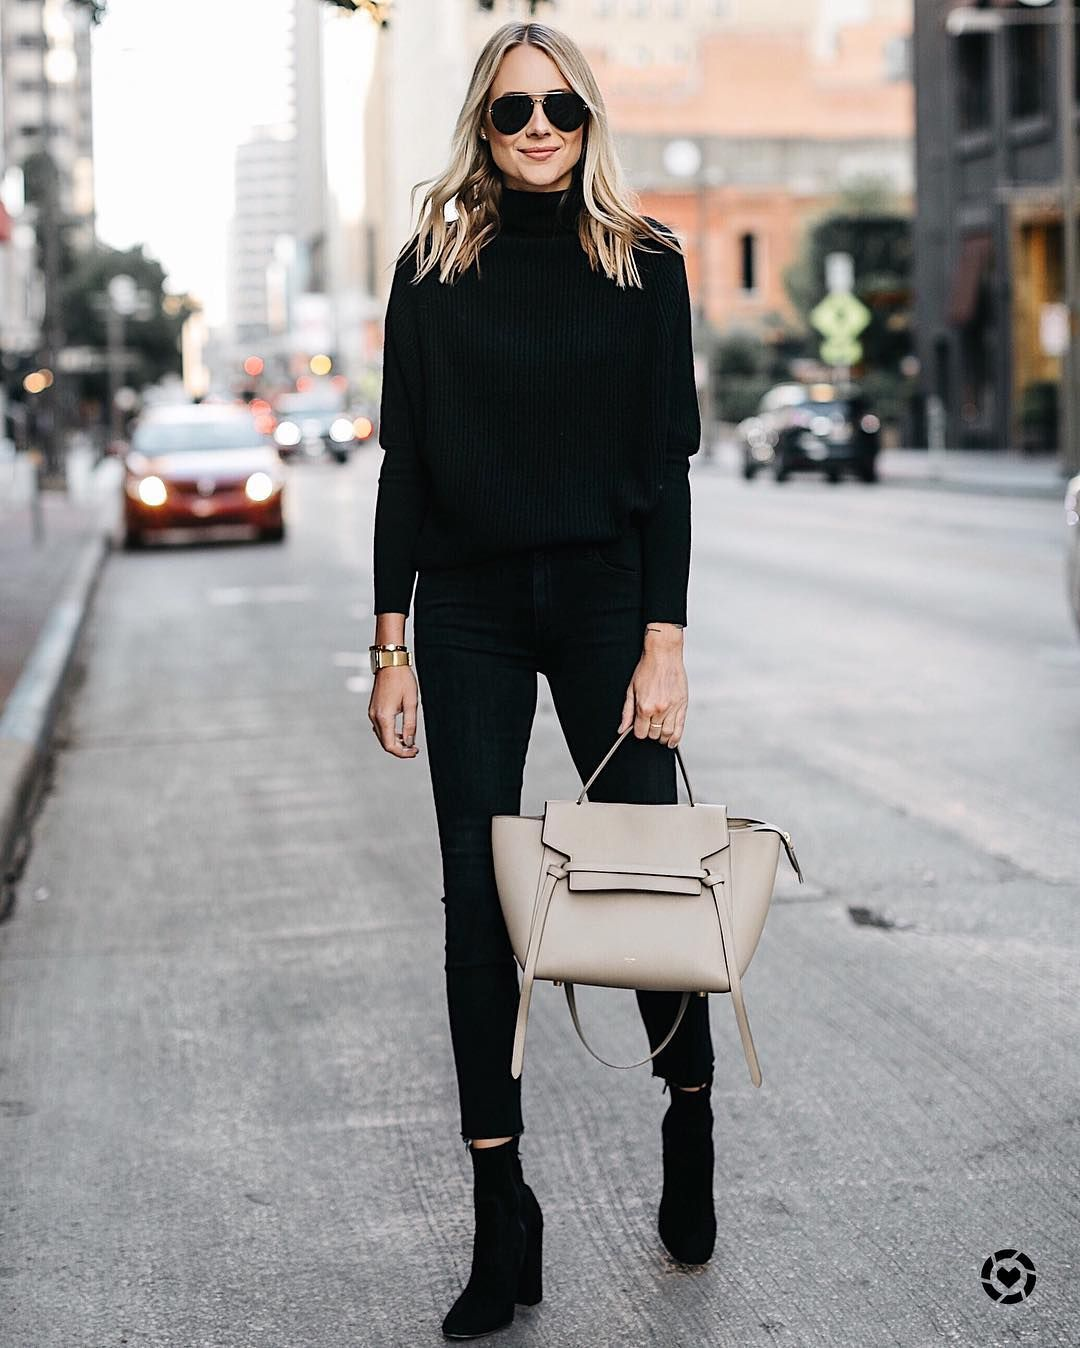 840f8d75e4 All black and a nude tote - simple and classy